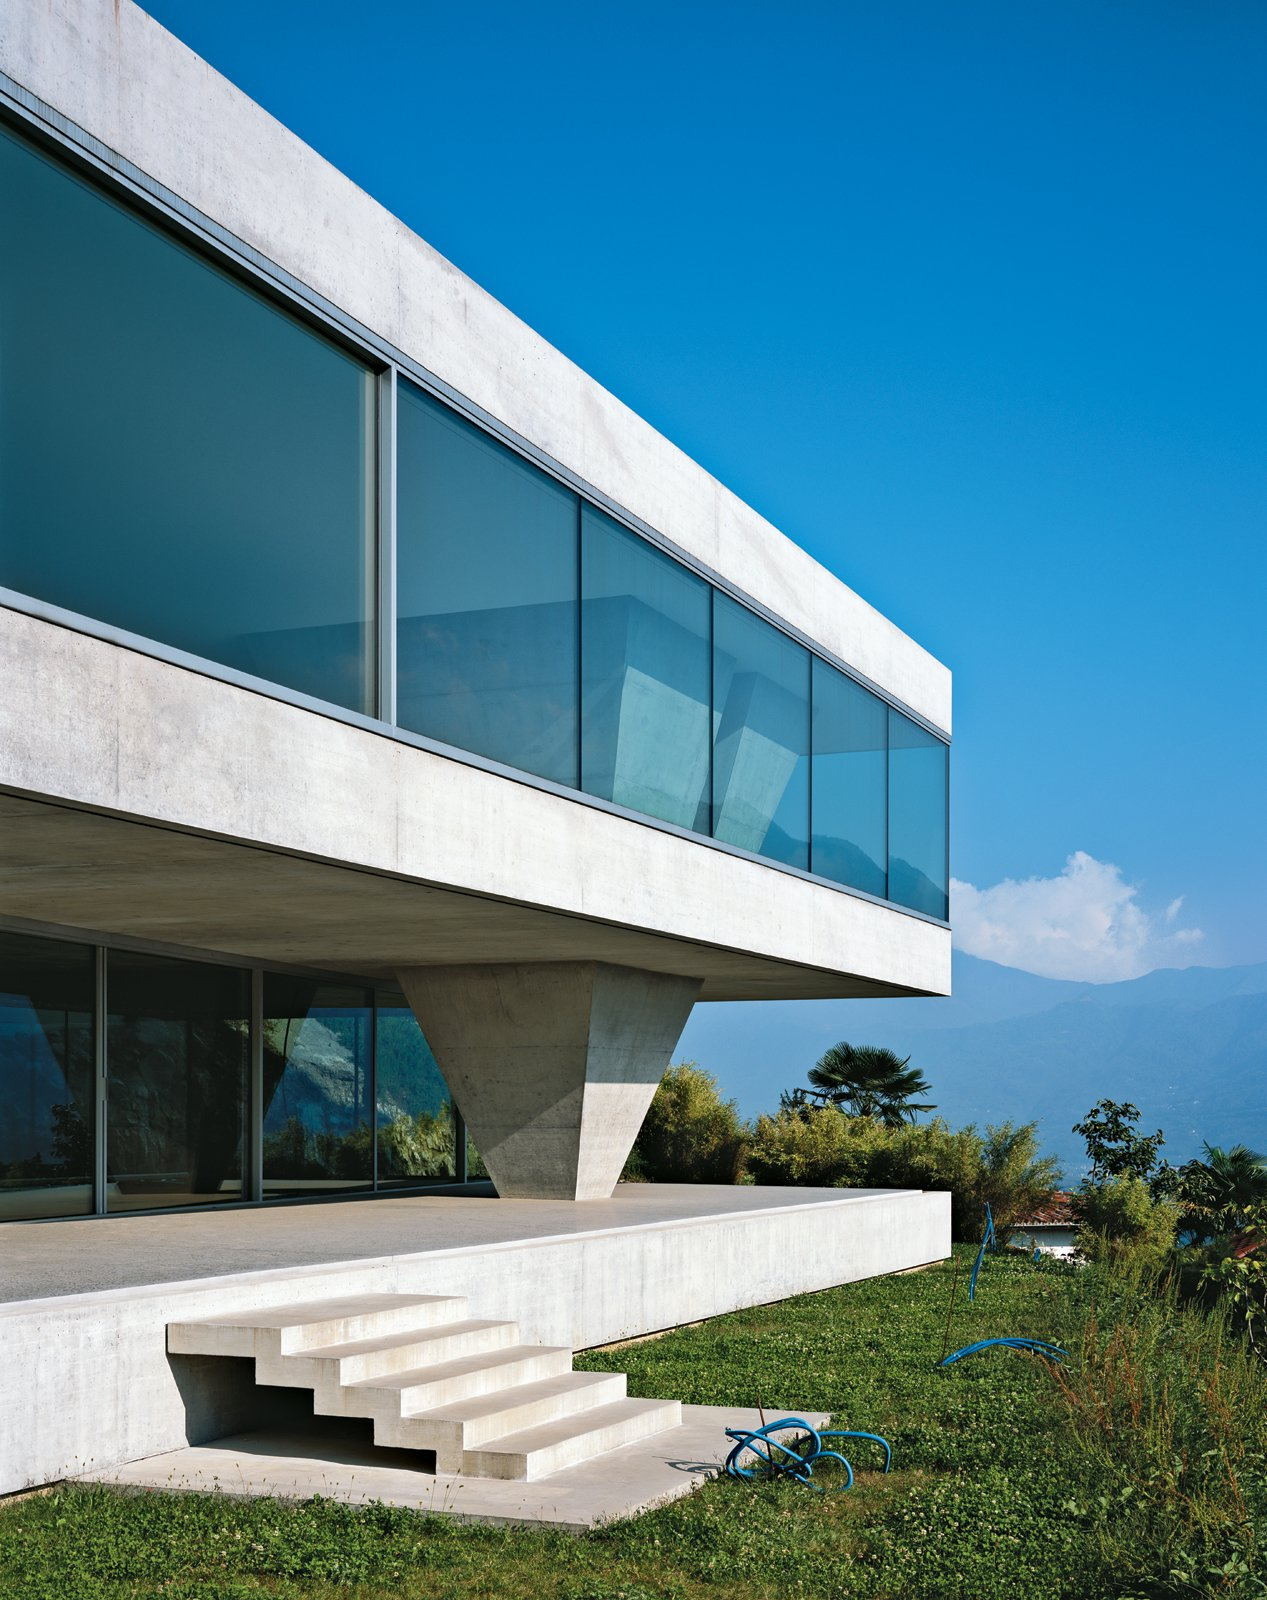 Photo 11 of 11 in Material Spotlight: 10 Killer Concrete Homes